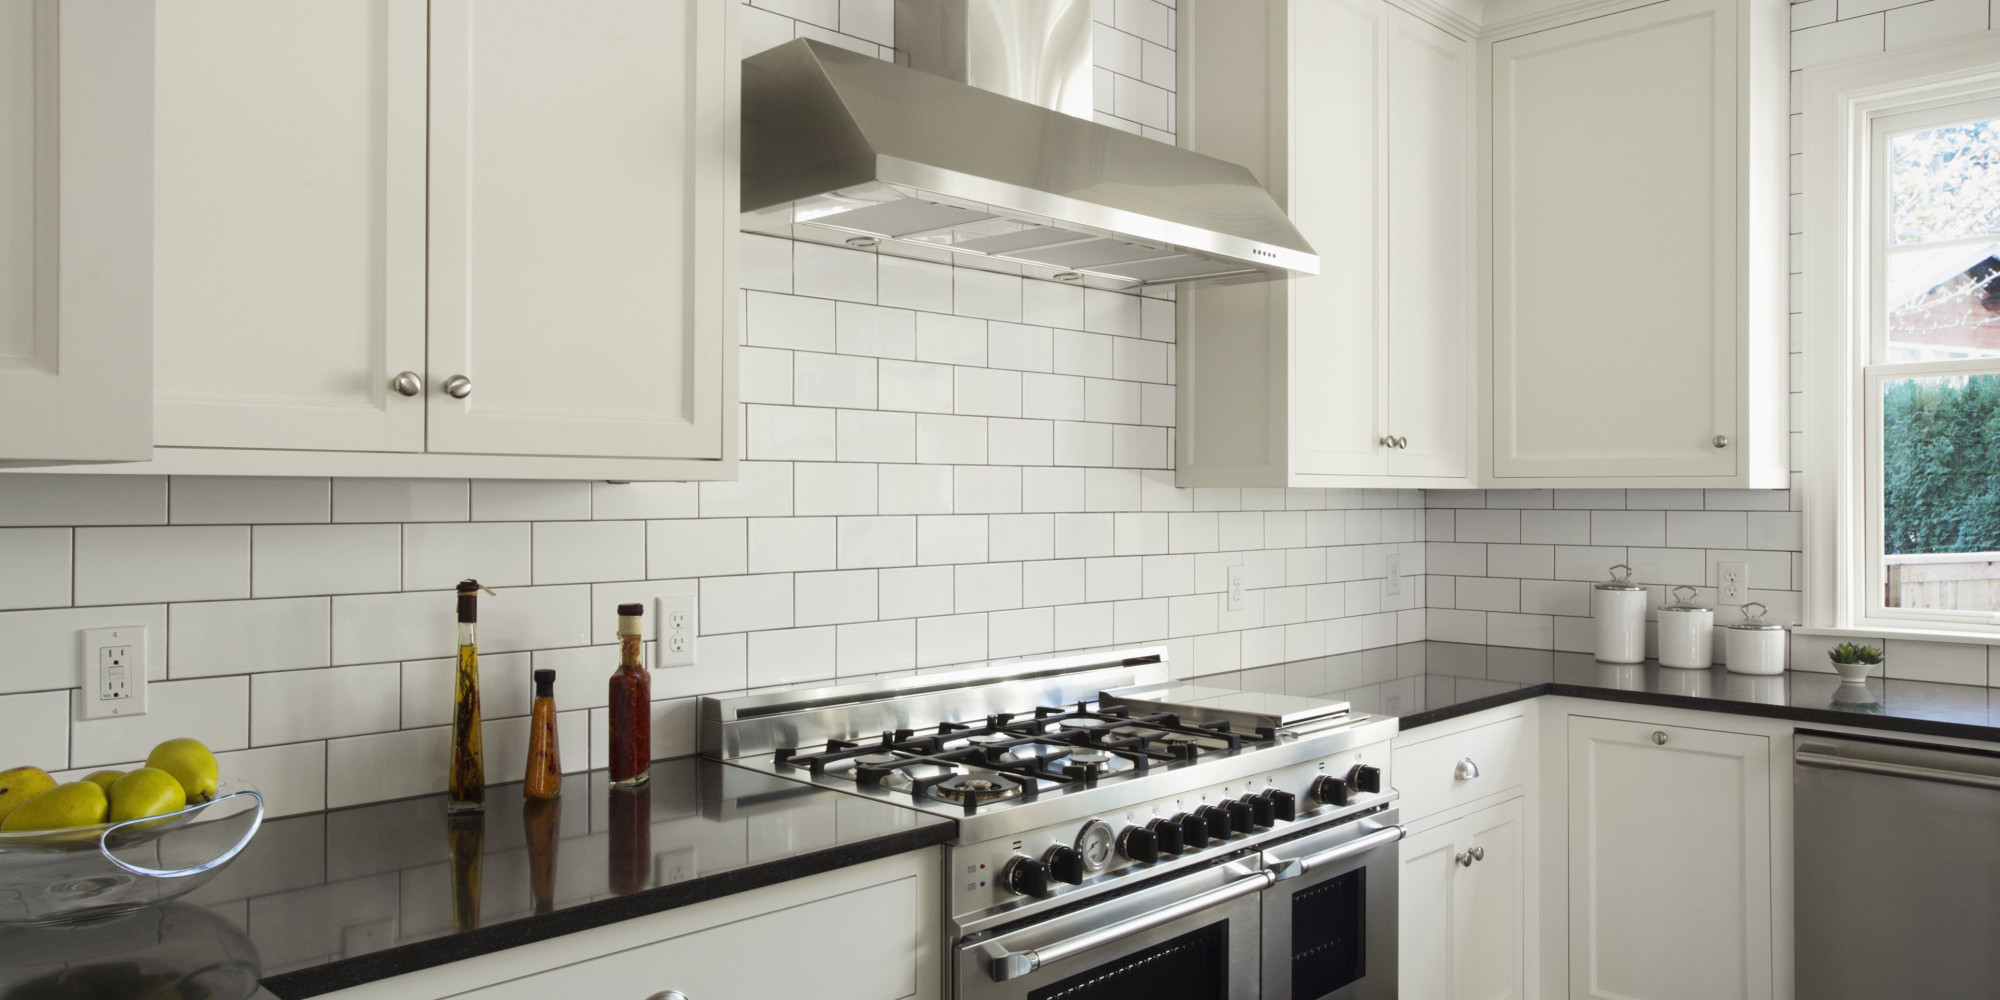 6 Countertops That Put Granite to Shame | HuffPost